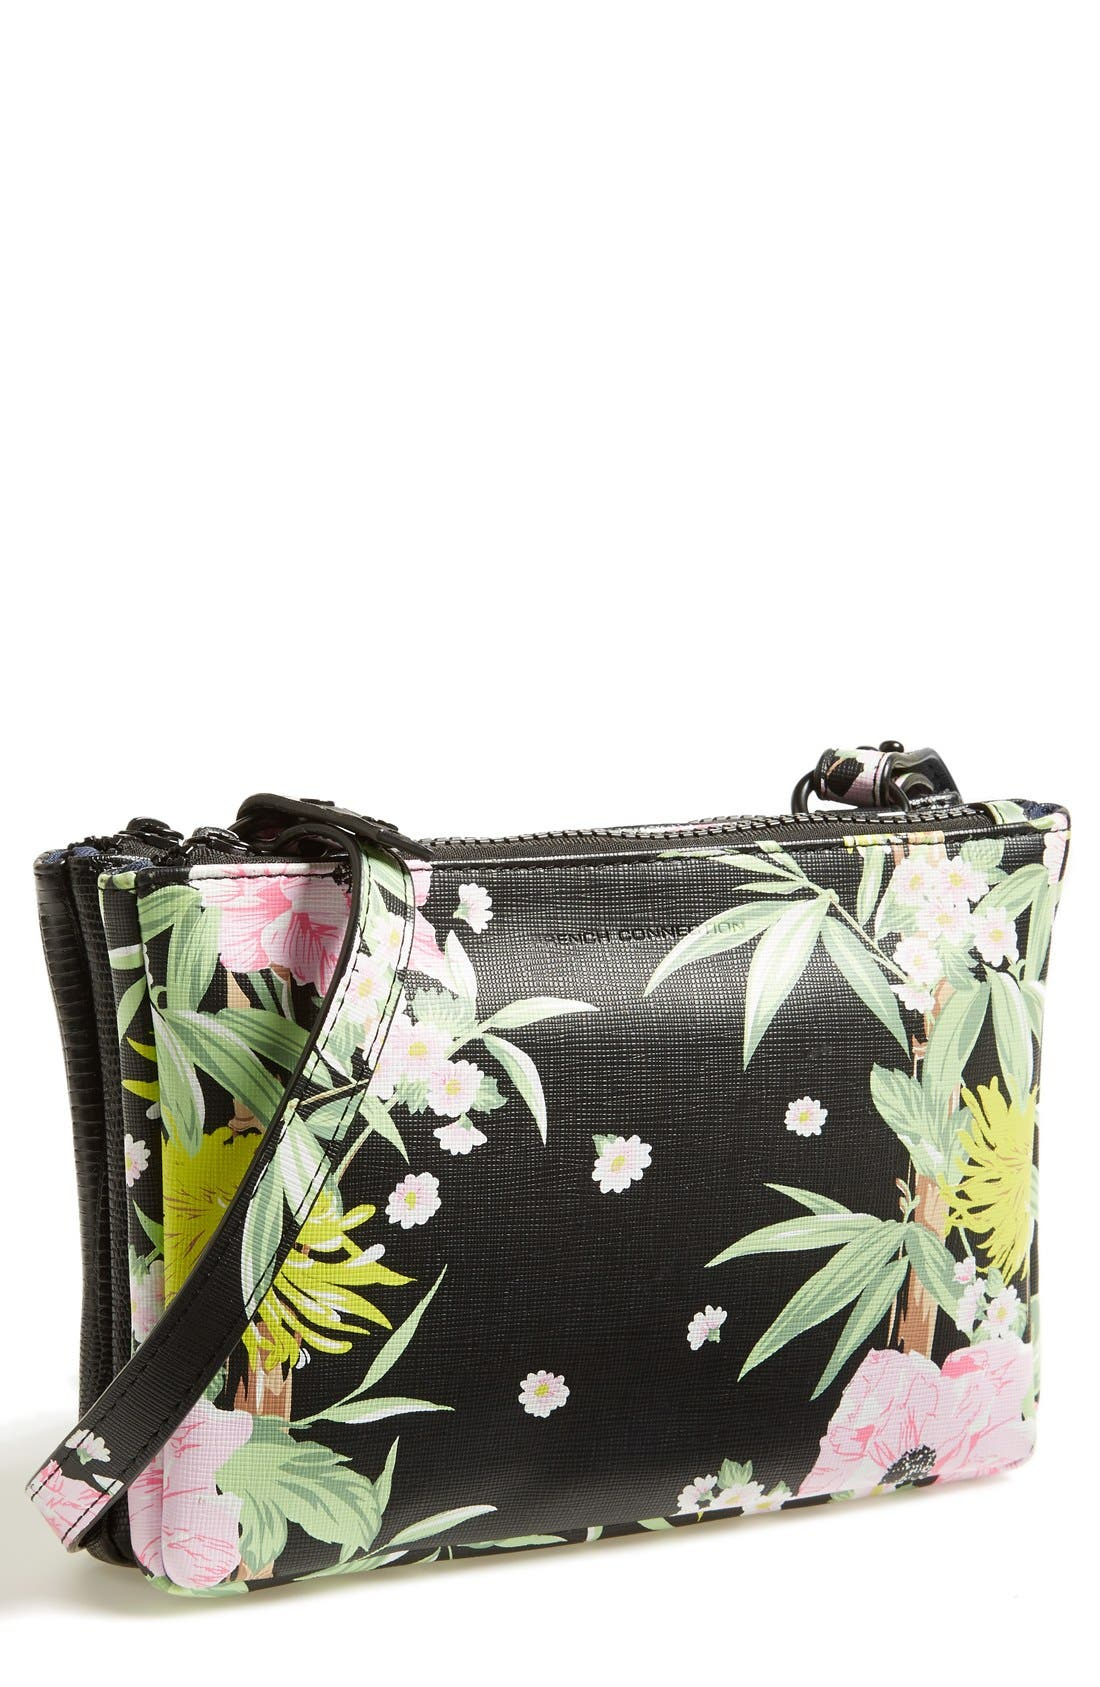 Main Image - French Connection 'Mini Gypsy' Faux Leather Crossbody Bag